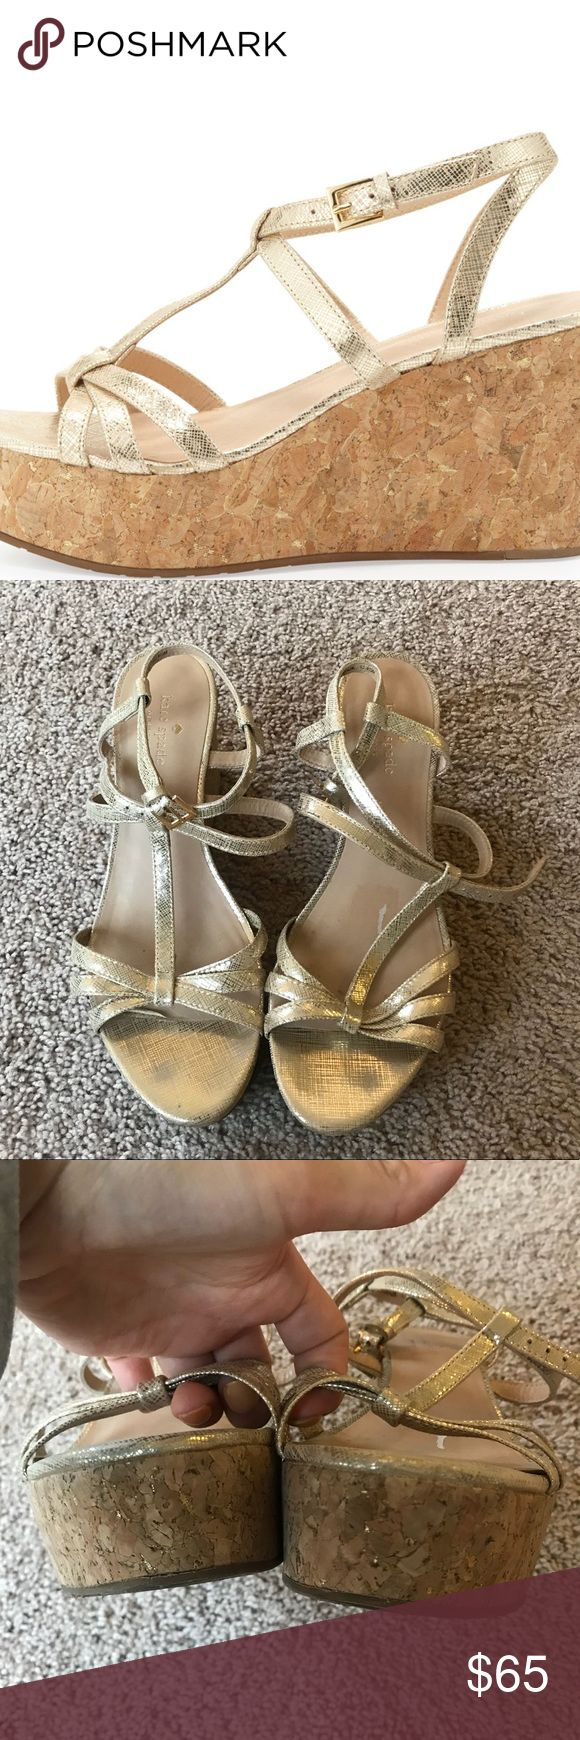 Kate spade tropez gold wedges Great condition authentic kate spade gold wedge heels. Size 9.5 kate spade Shoes Wedges